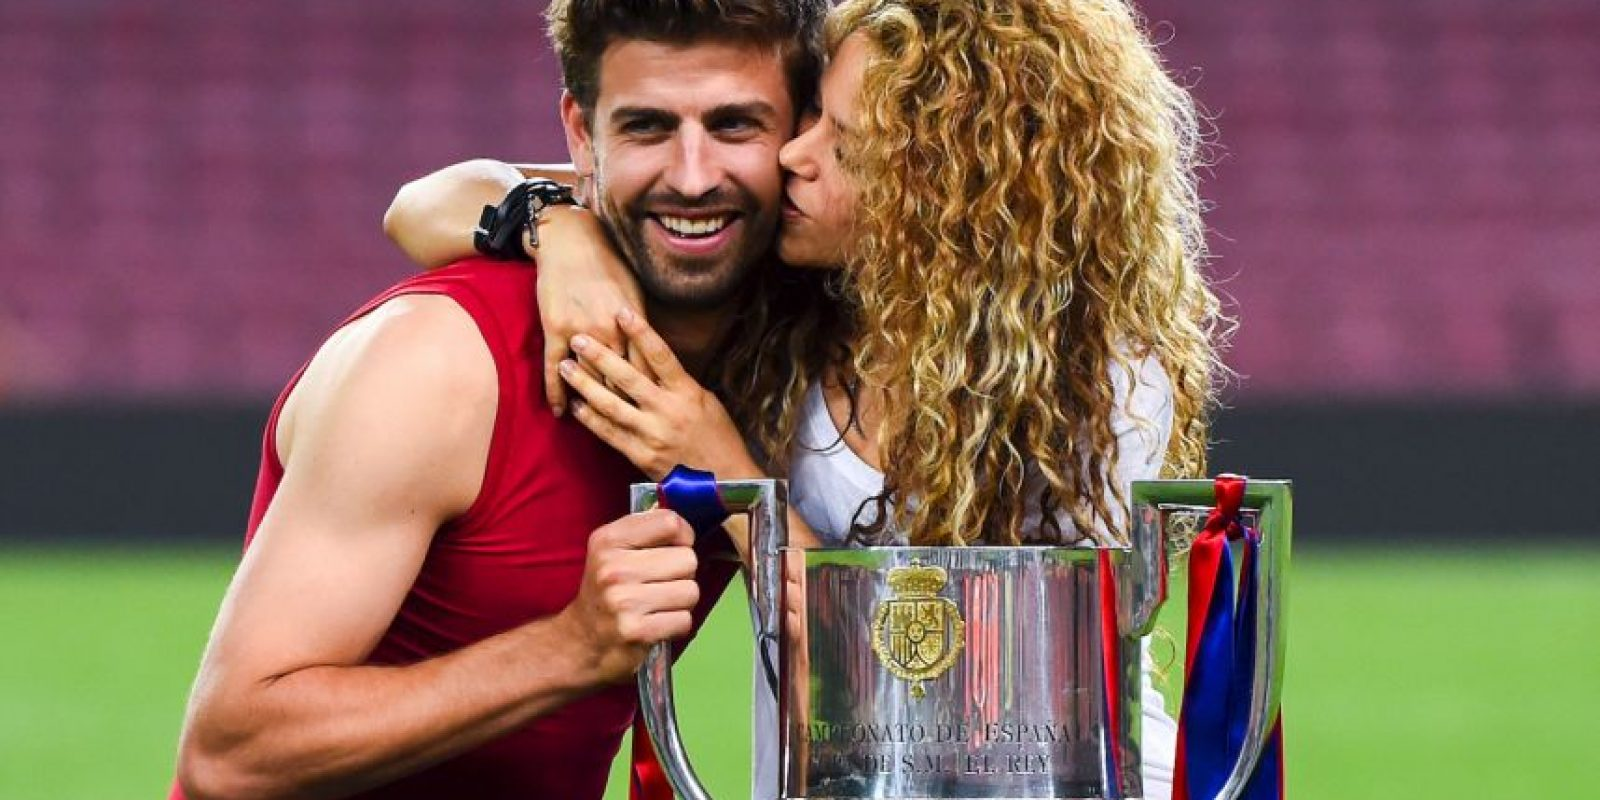 1) Gerard Piqué Foto: Getty Images